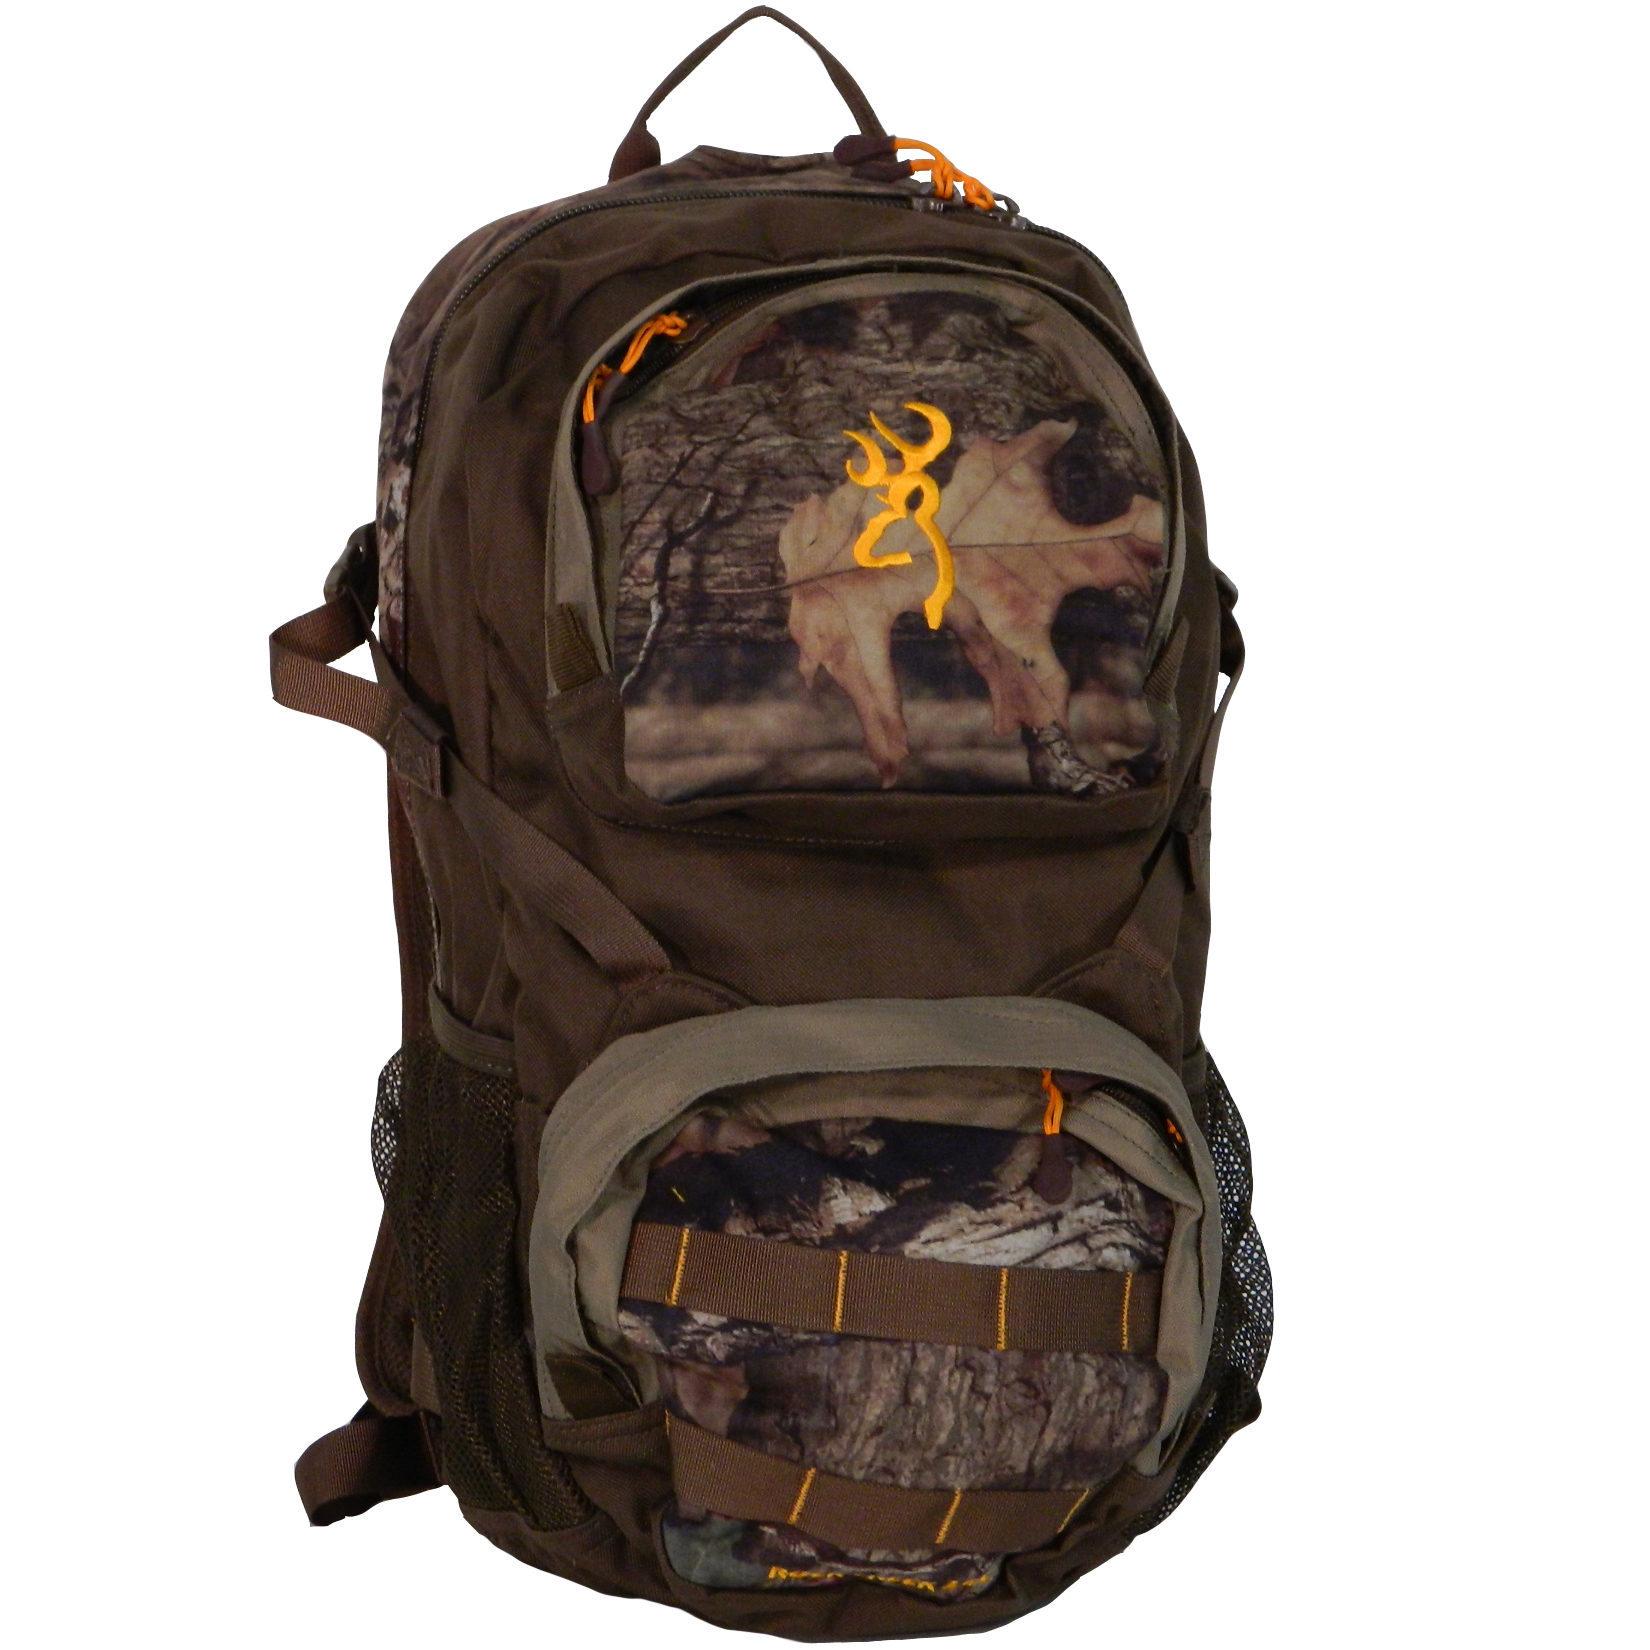 Browning rock creek 24l backpack for Browning fishing backpack